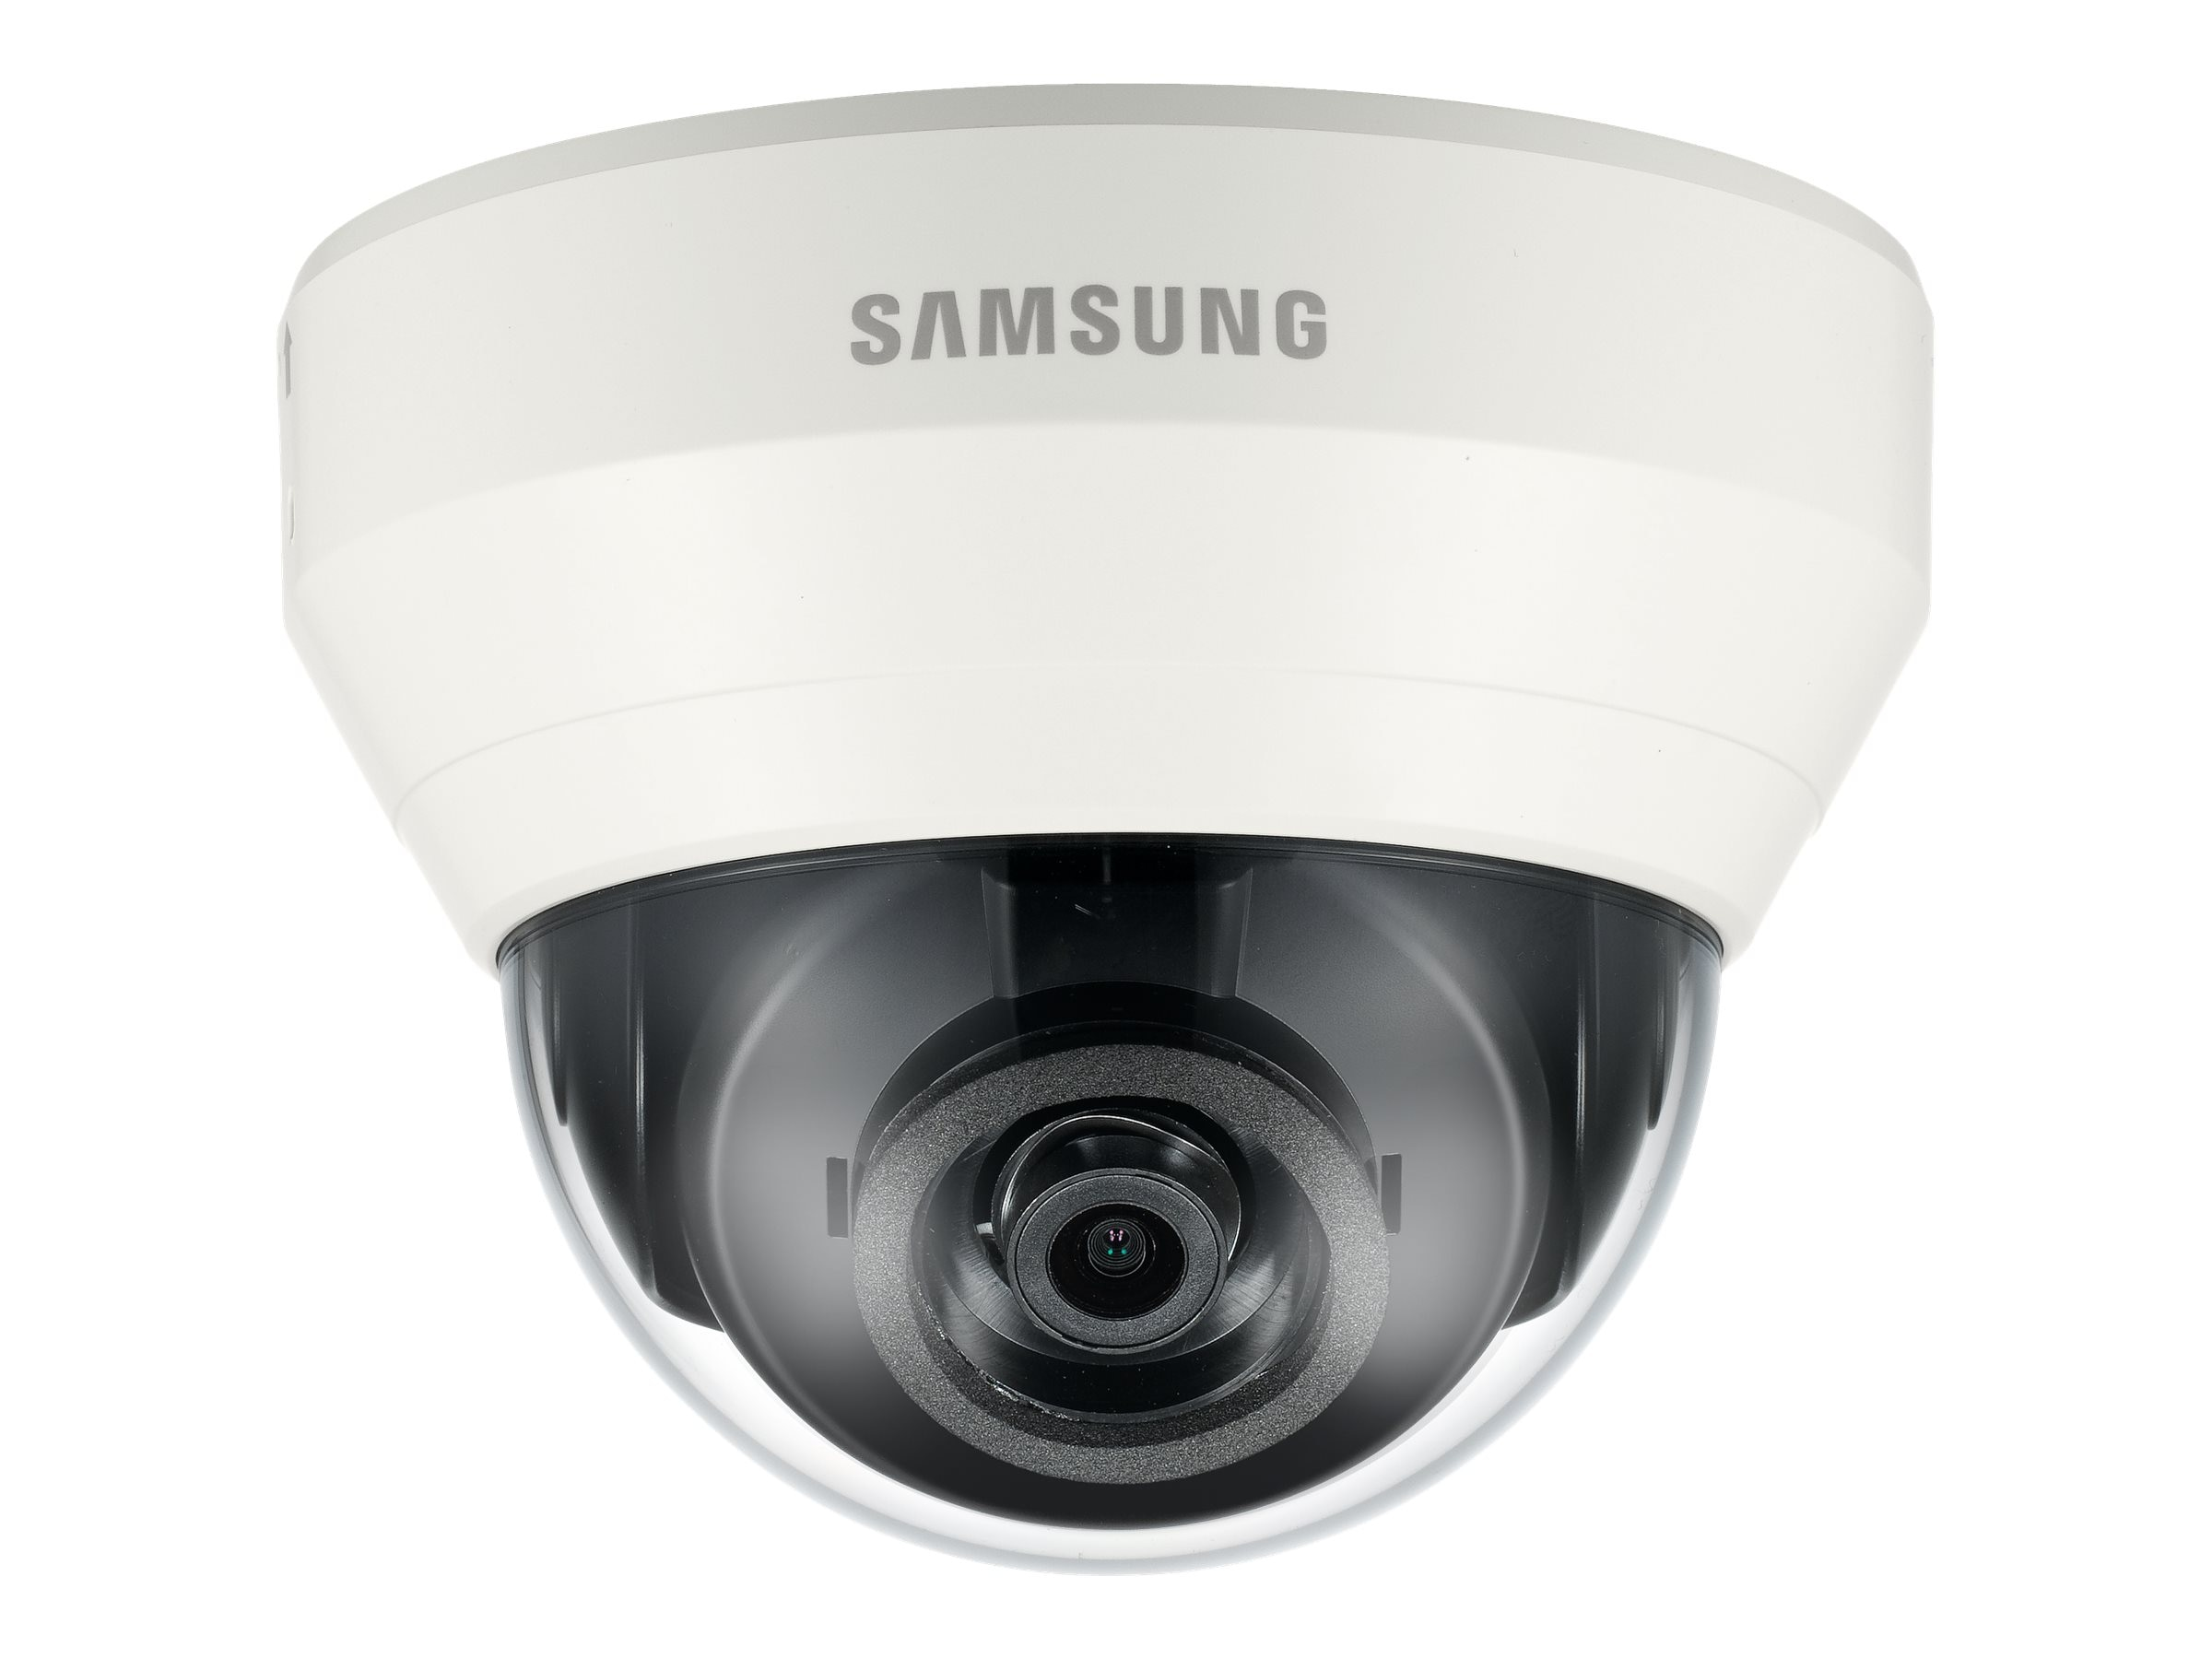 Samsung 2MP Full HD Day Night Network Dome Camera